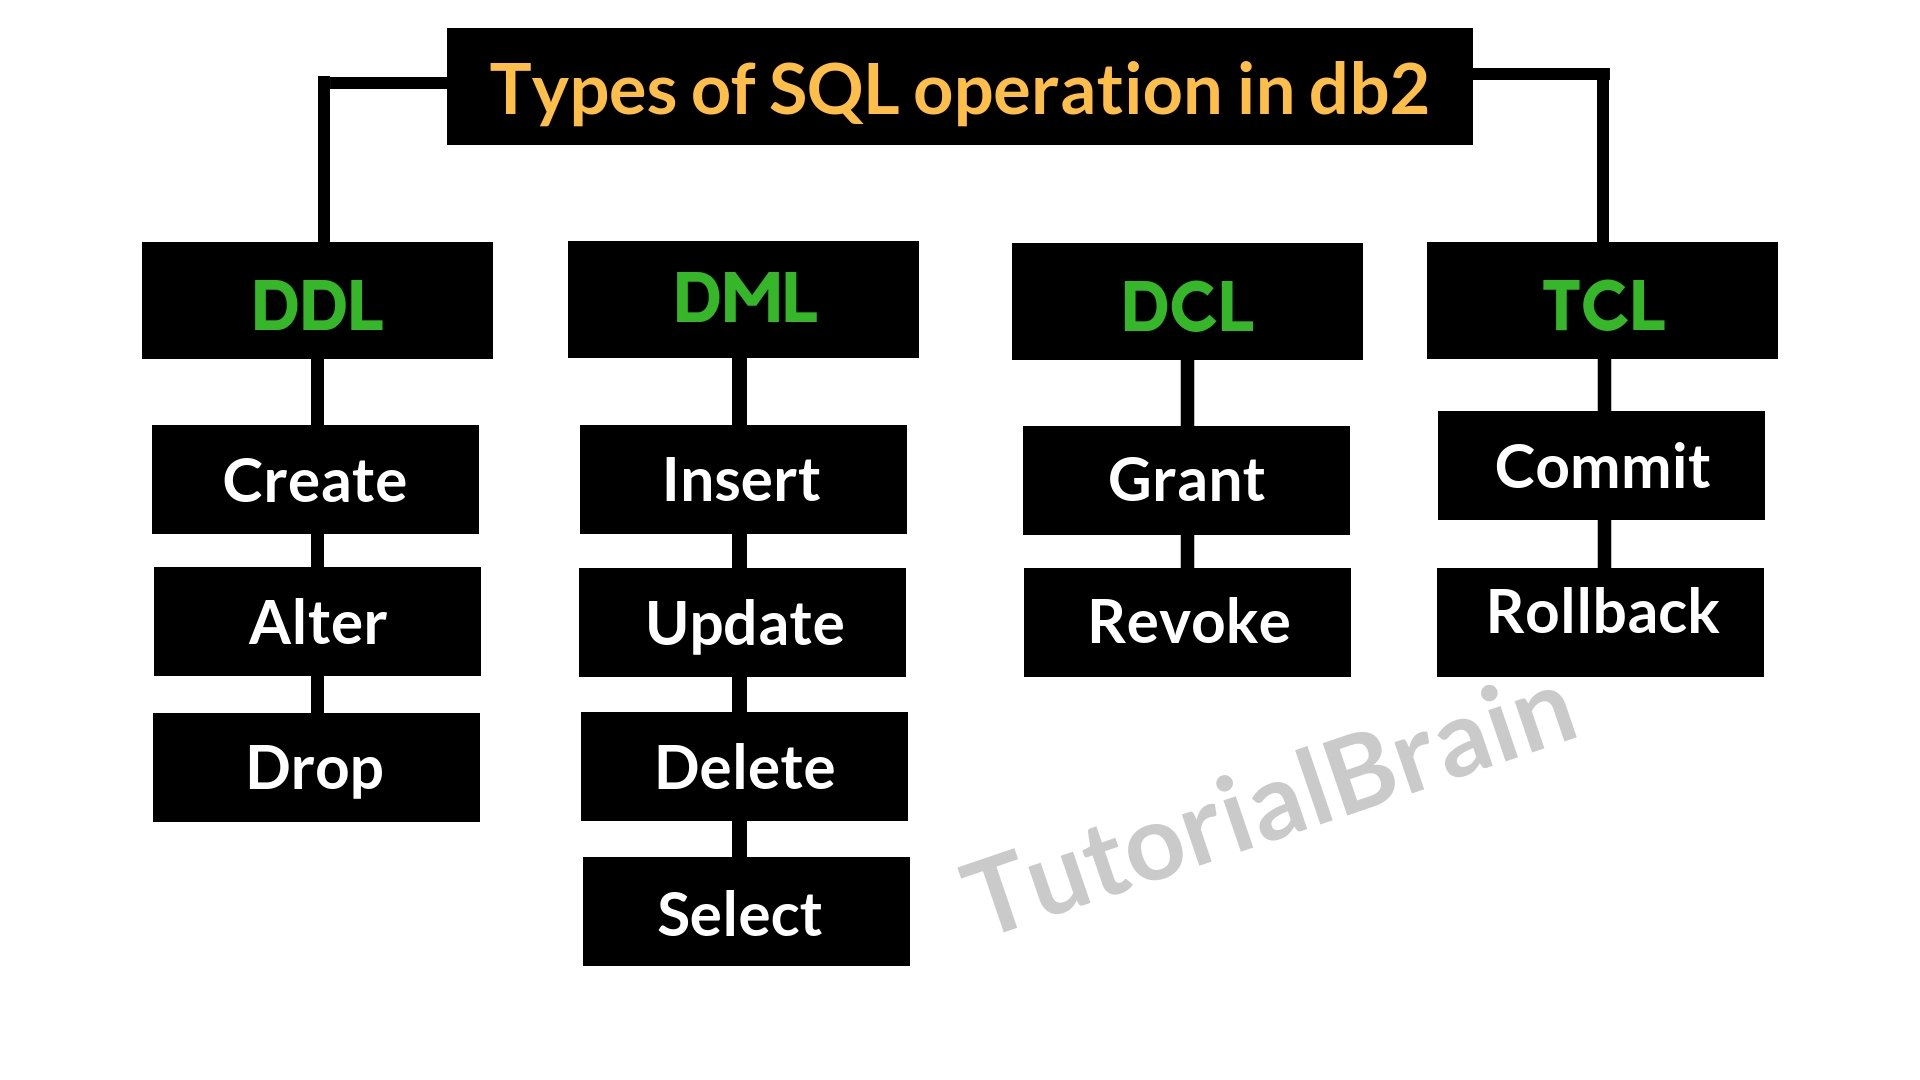 Types of SQL operation in db2